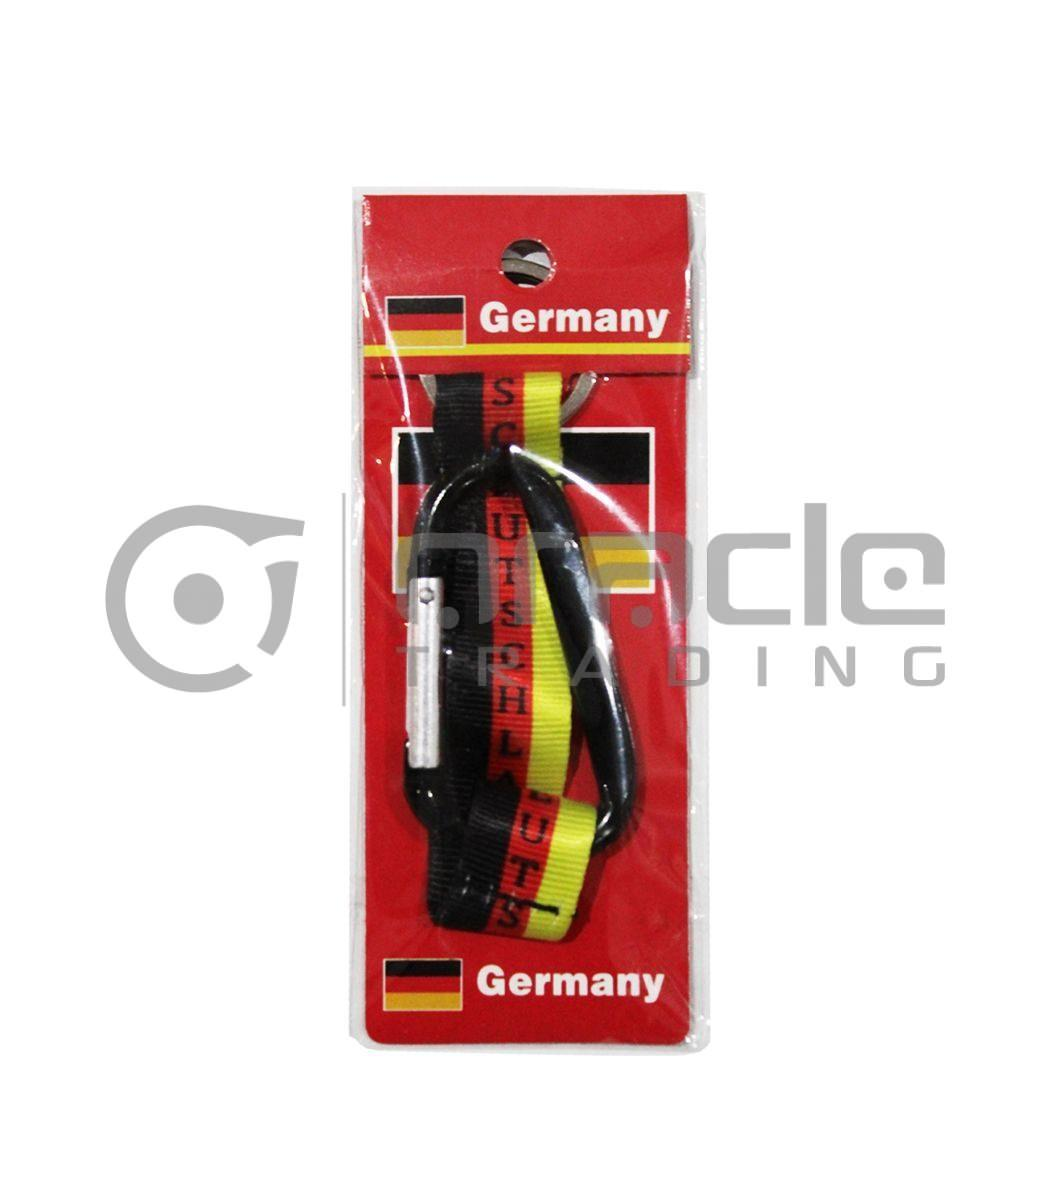 Germany Mini Lanyard Keychain 12-Pack